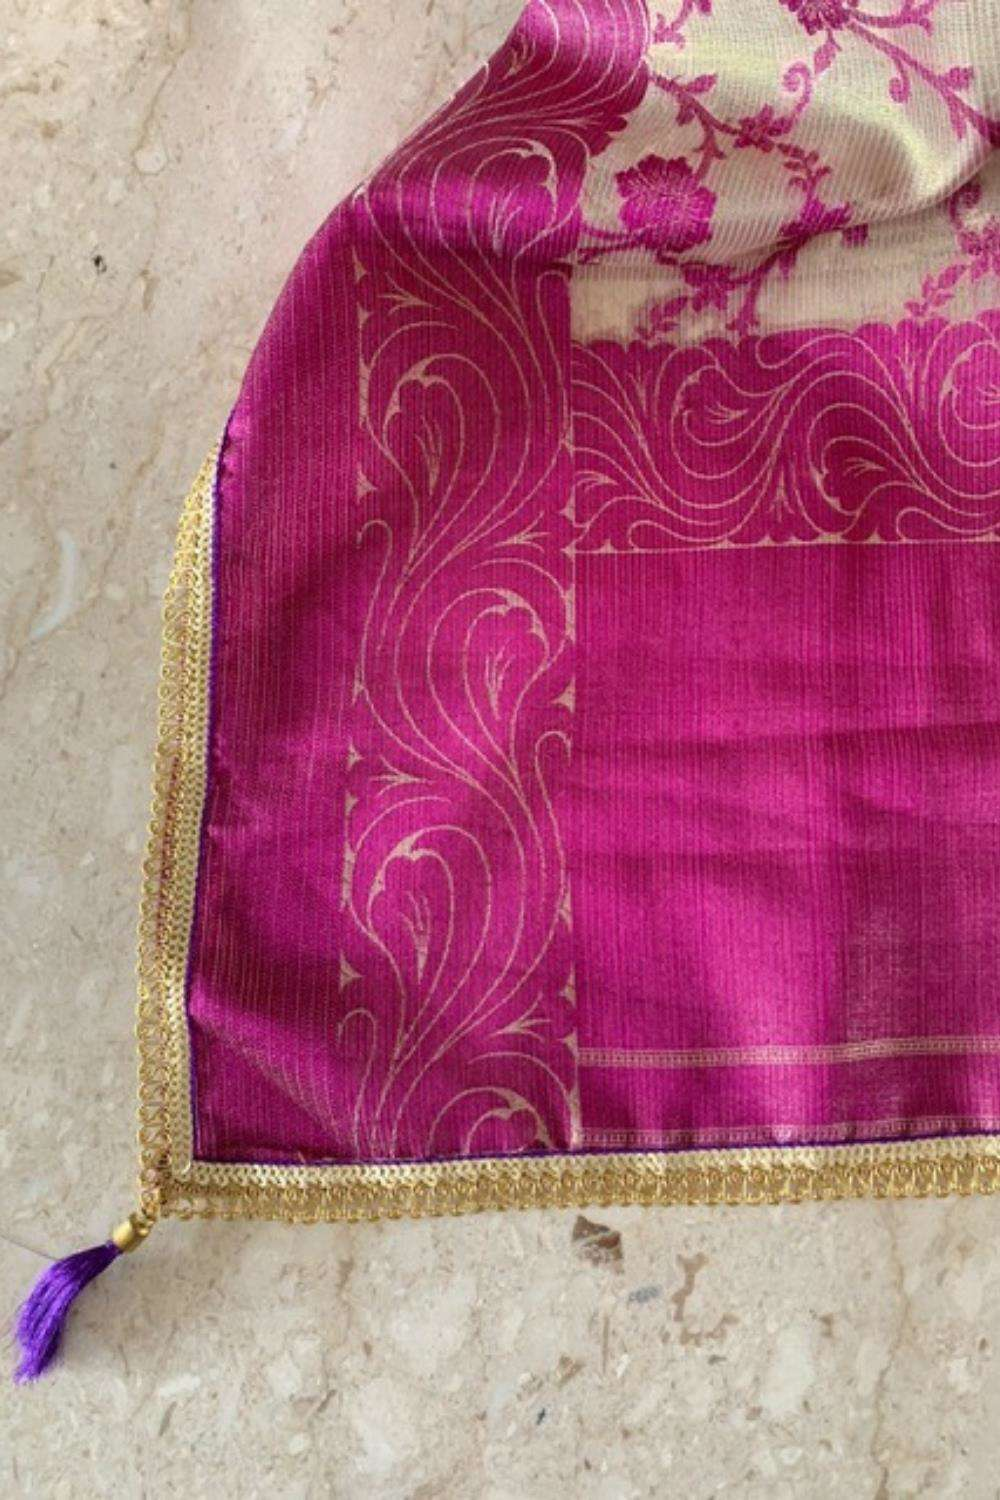 Gold and purple tissue saree with floral weave and gold sequin edging